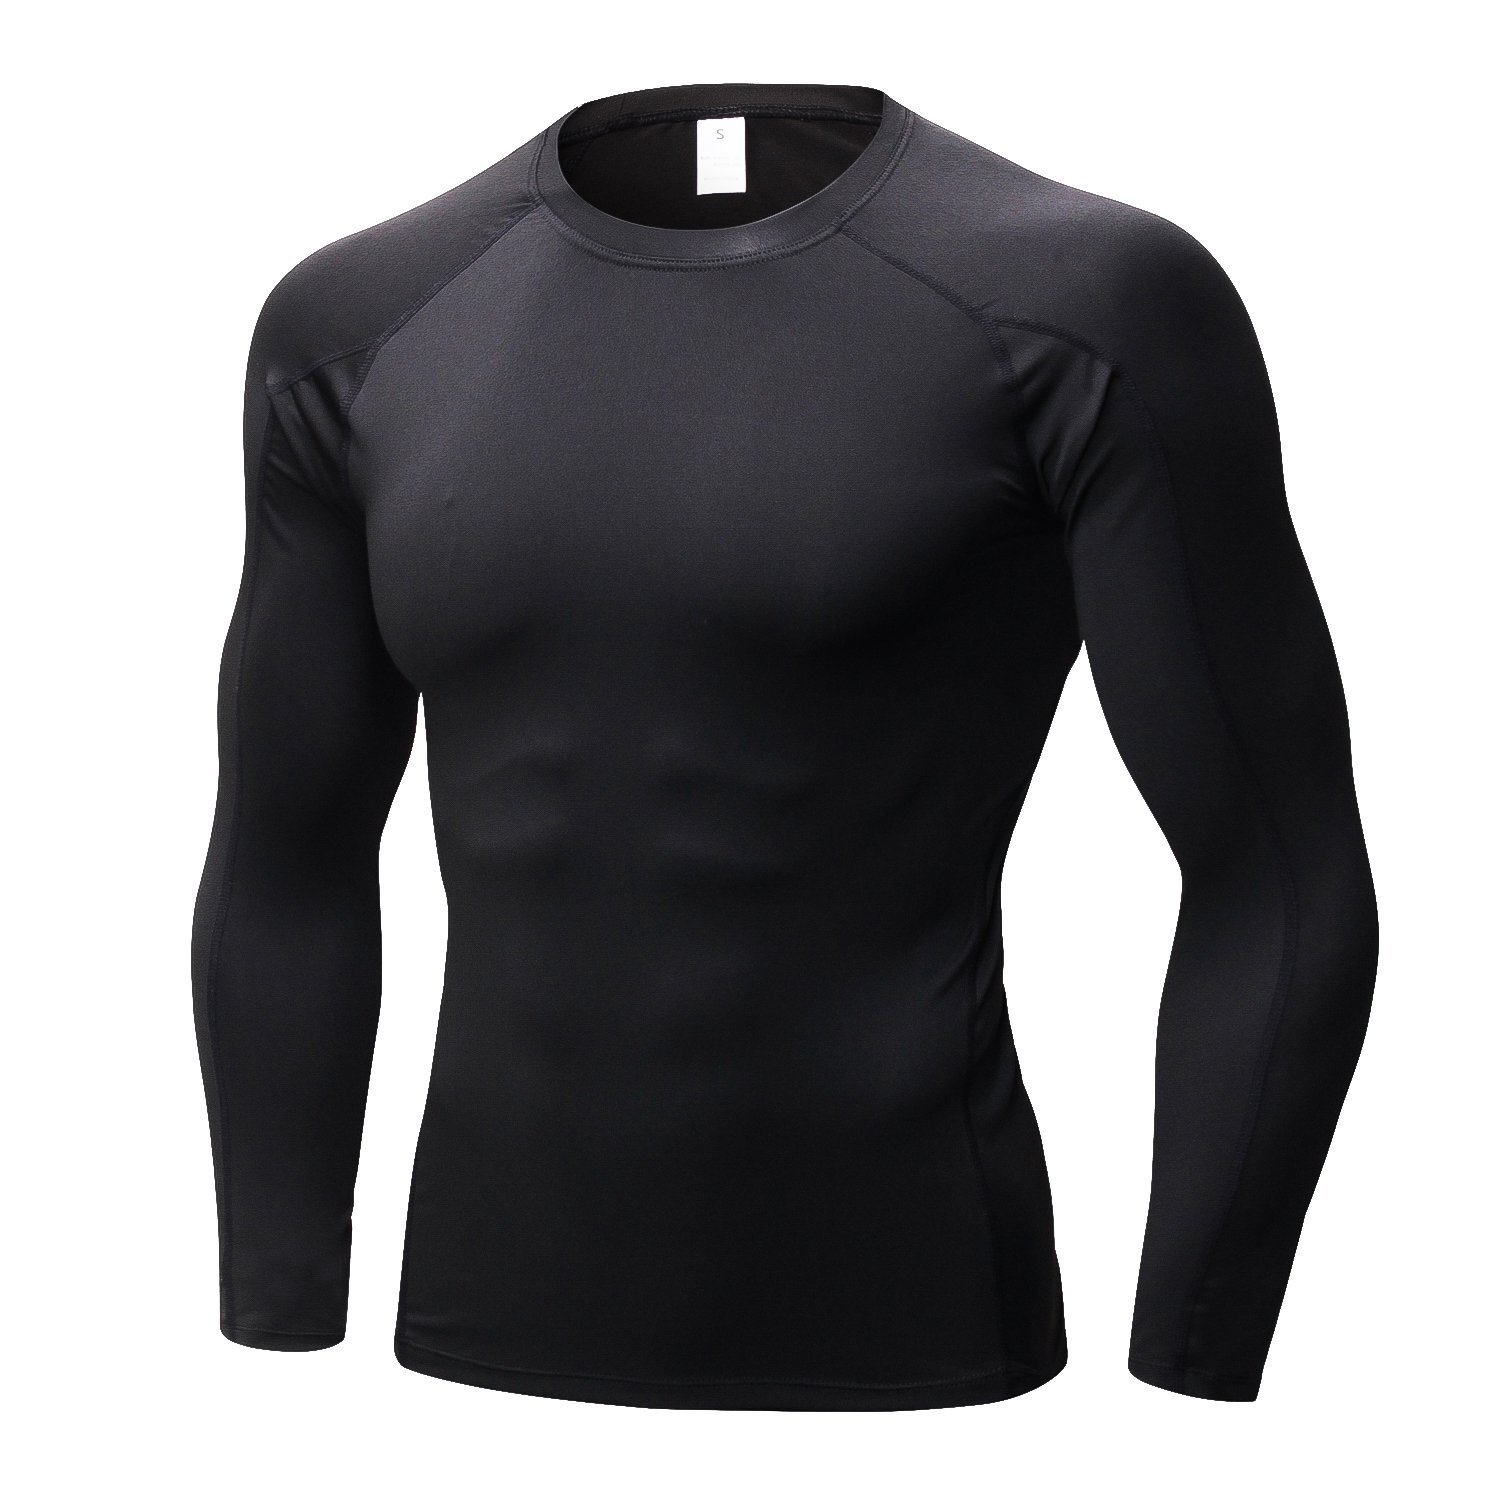 Onlyway Mens Quick-Dry Long Sleeve T-Shirt Breathable Baselayer Compression Top